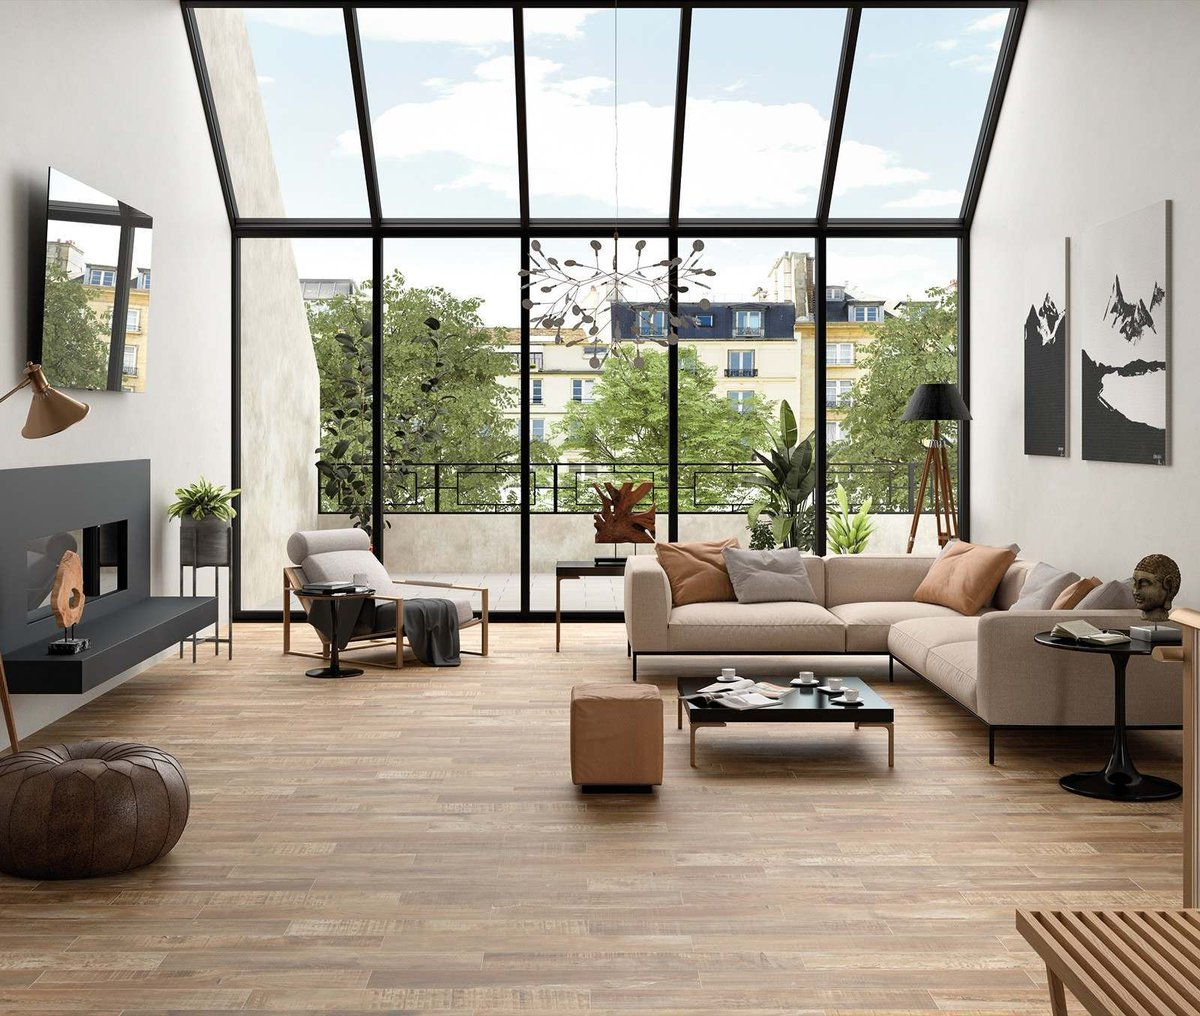 Love the look of wood? Check out our new Mikeno range. Made from procelain in a matt finish theyre available in three colour variants - Ash, Grey & Honey and priced at only £16.99 per sqm 🙂 tilemountain.co.uk/catalog/catego… #tiling #diy #flooring